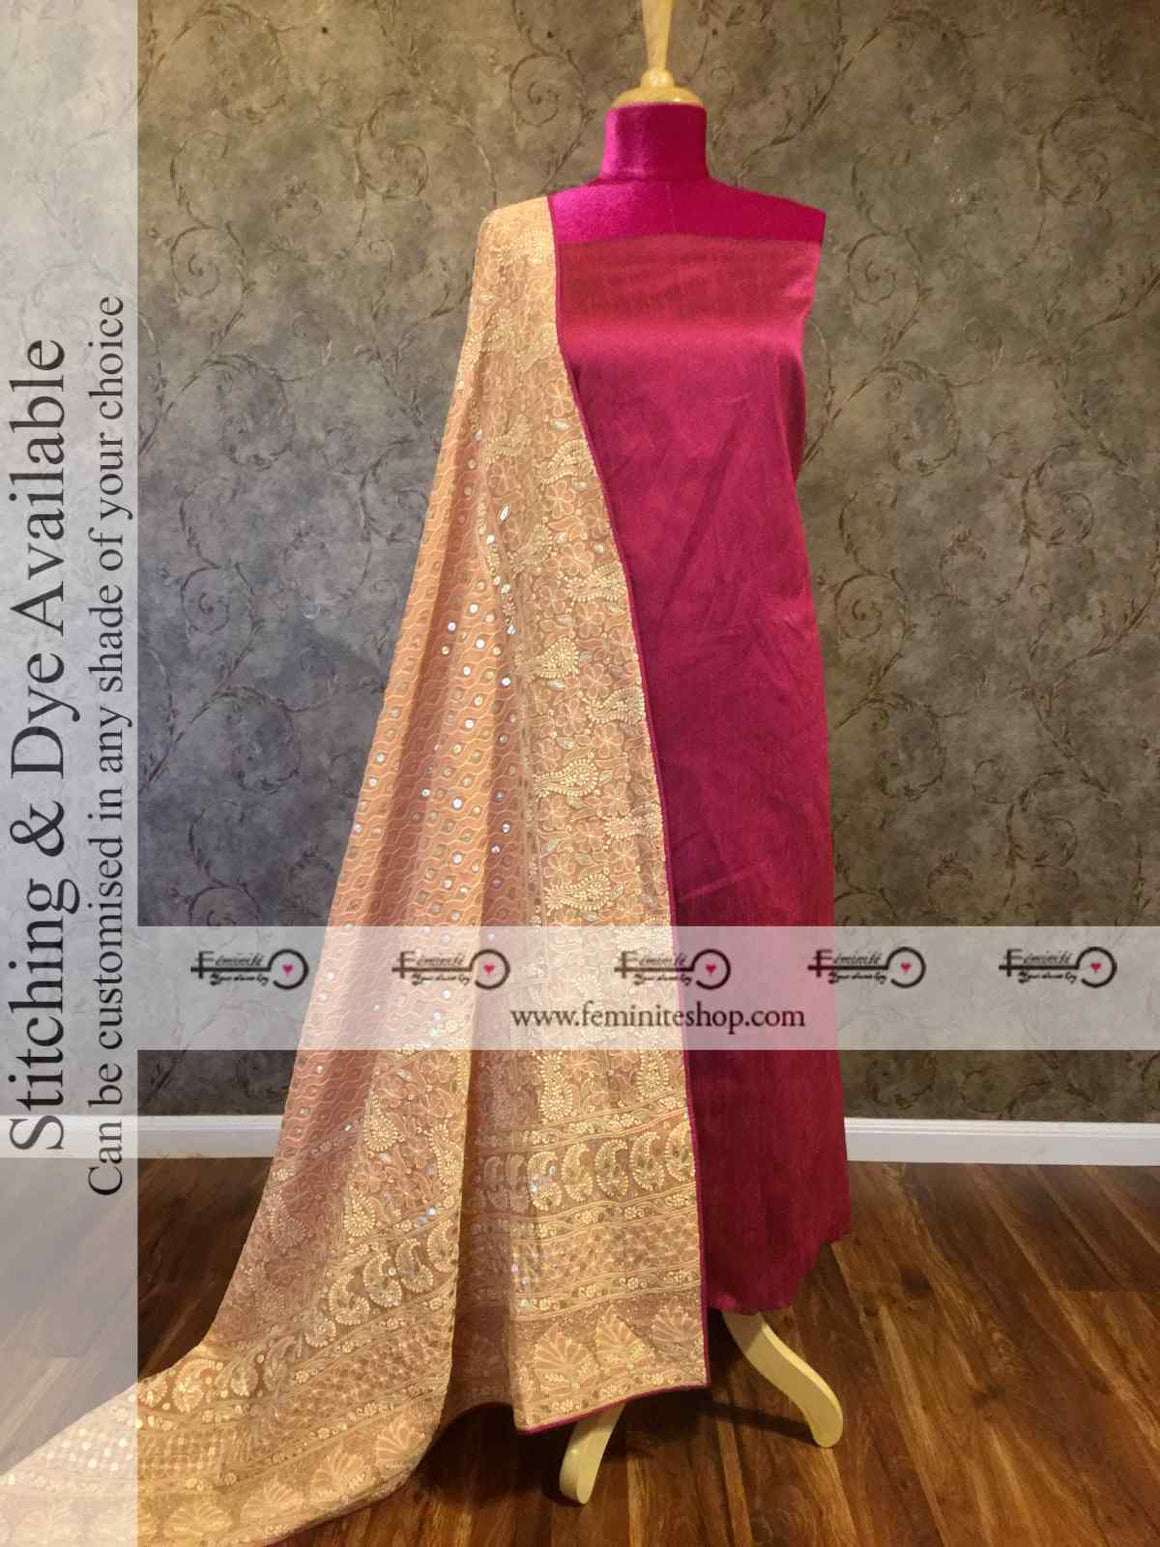 Designer Raisin brown chikankari dupatta with gotapatti work suit